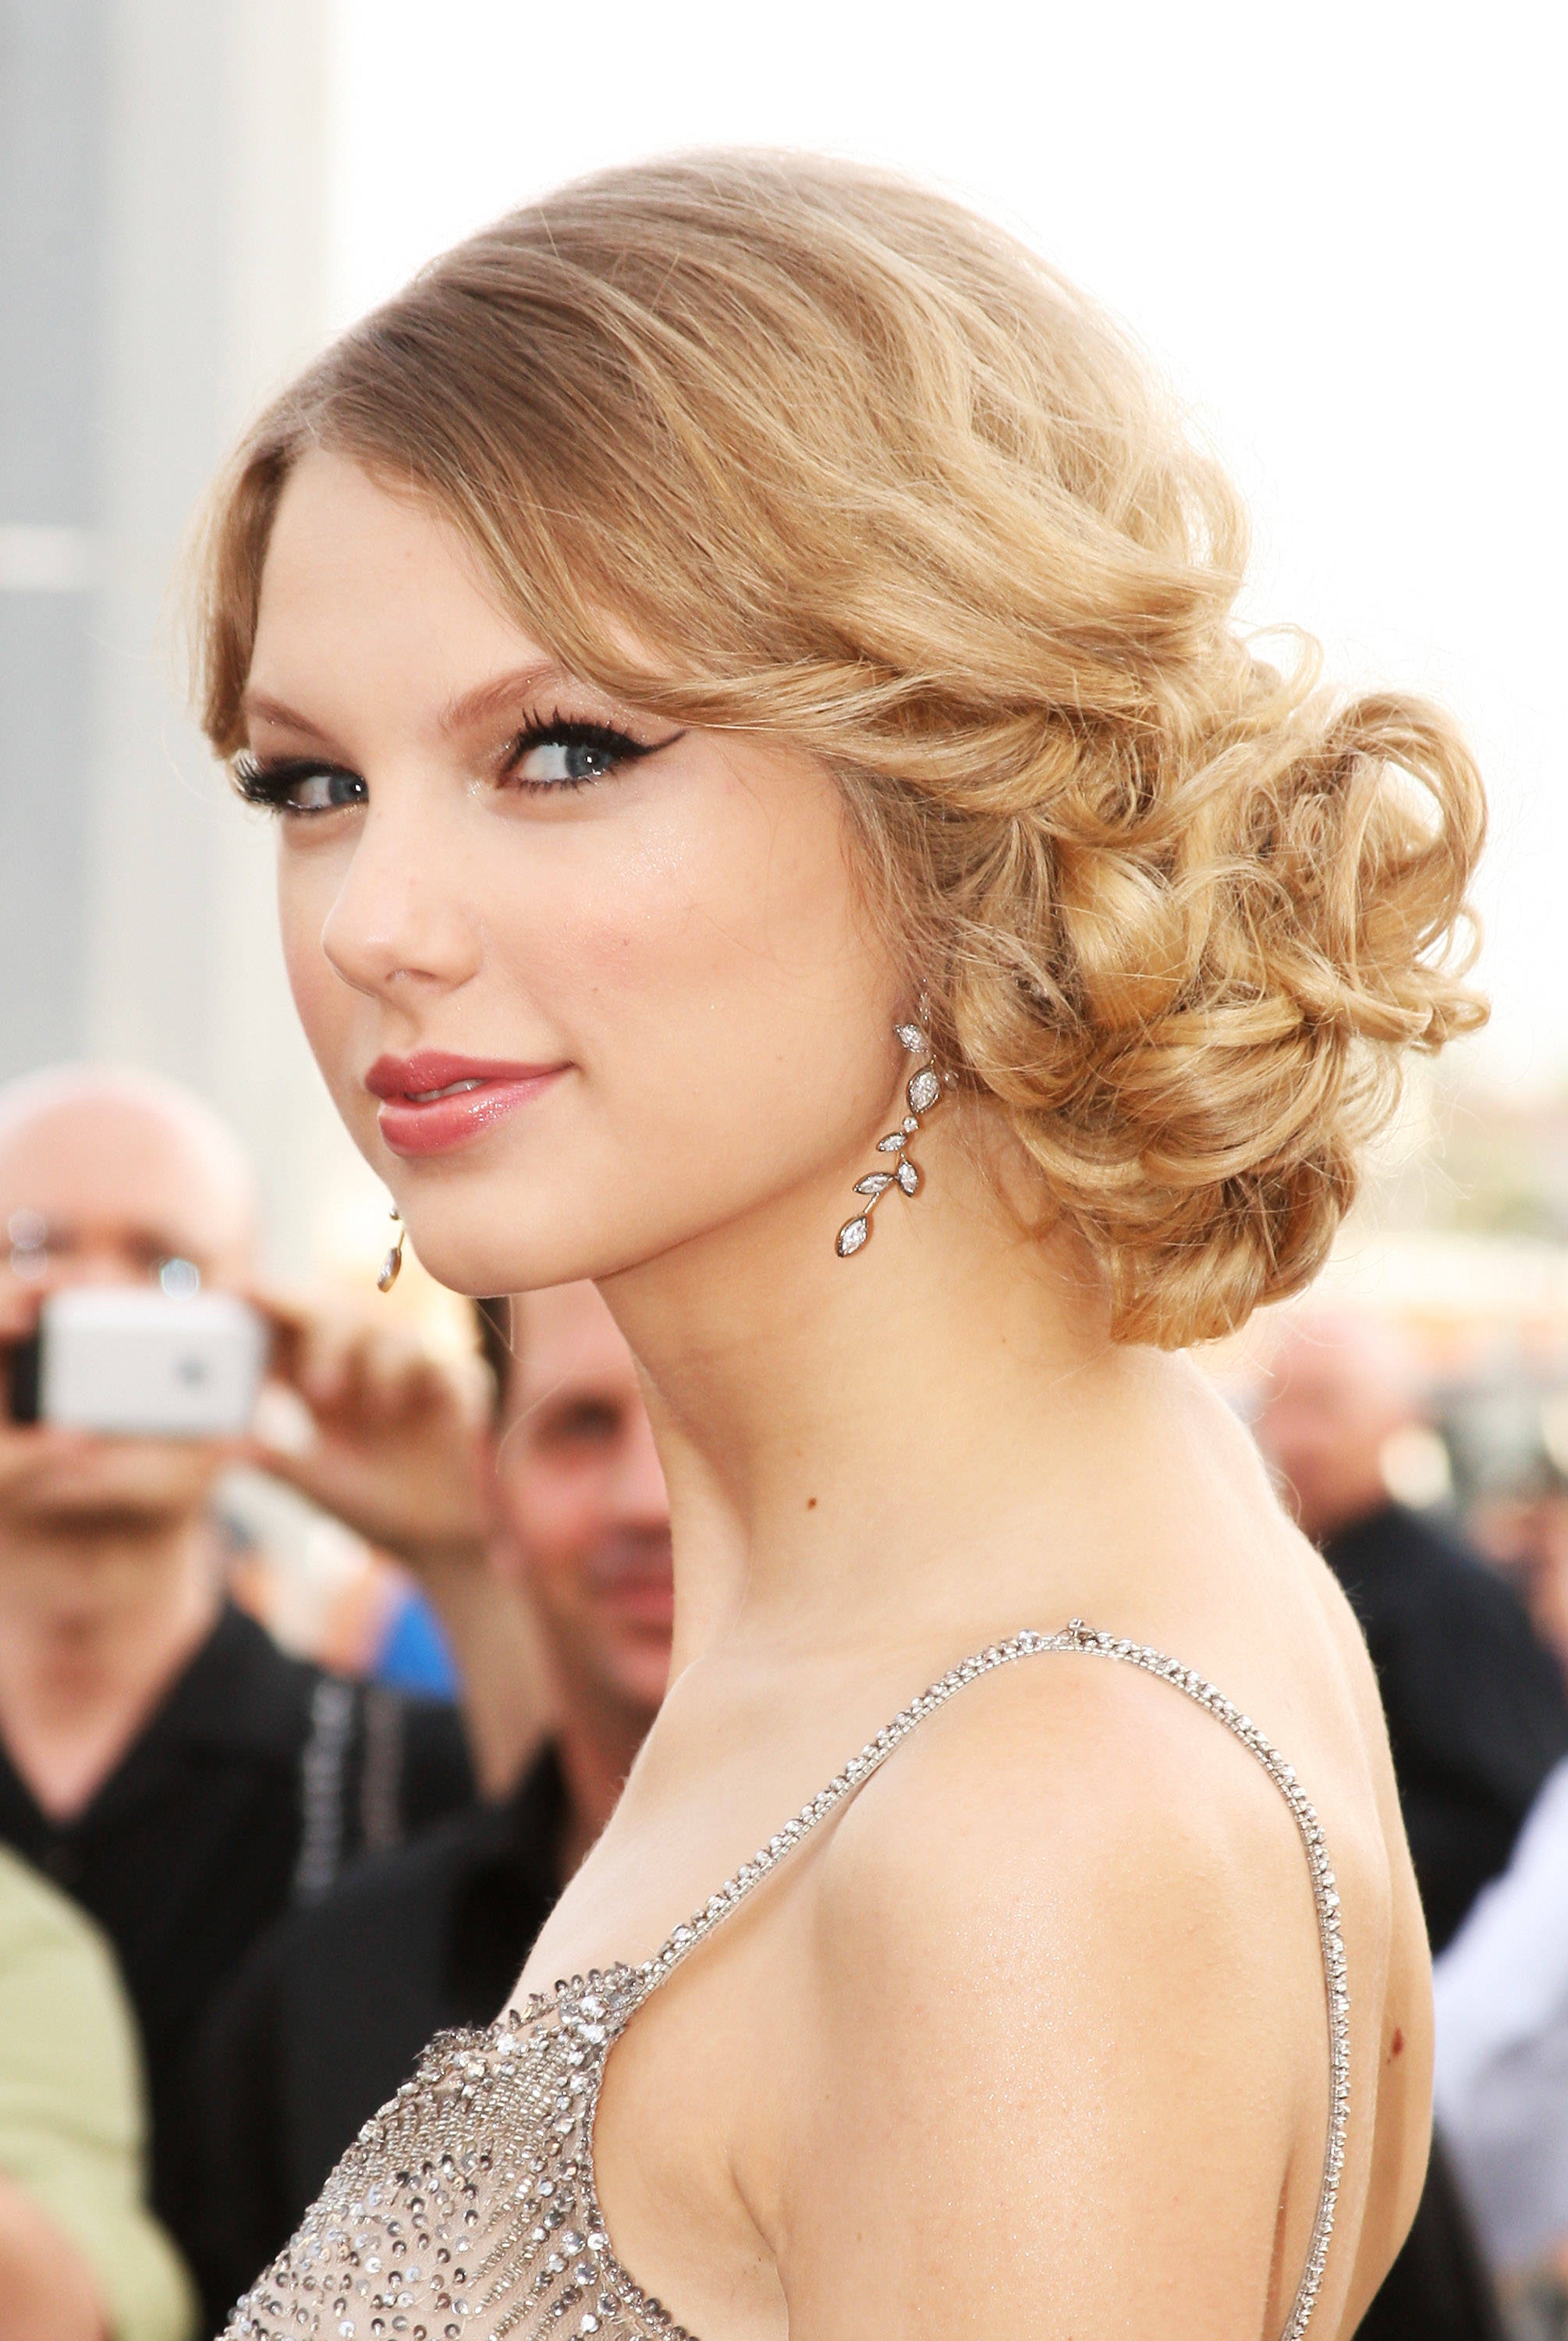 Popular  Easy Updo Hairstyle for Prom Night  vivanspace